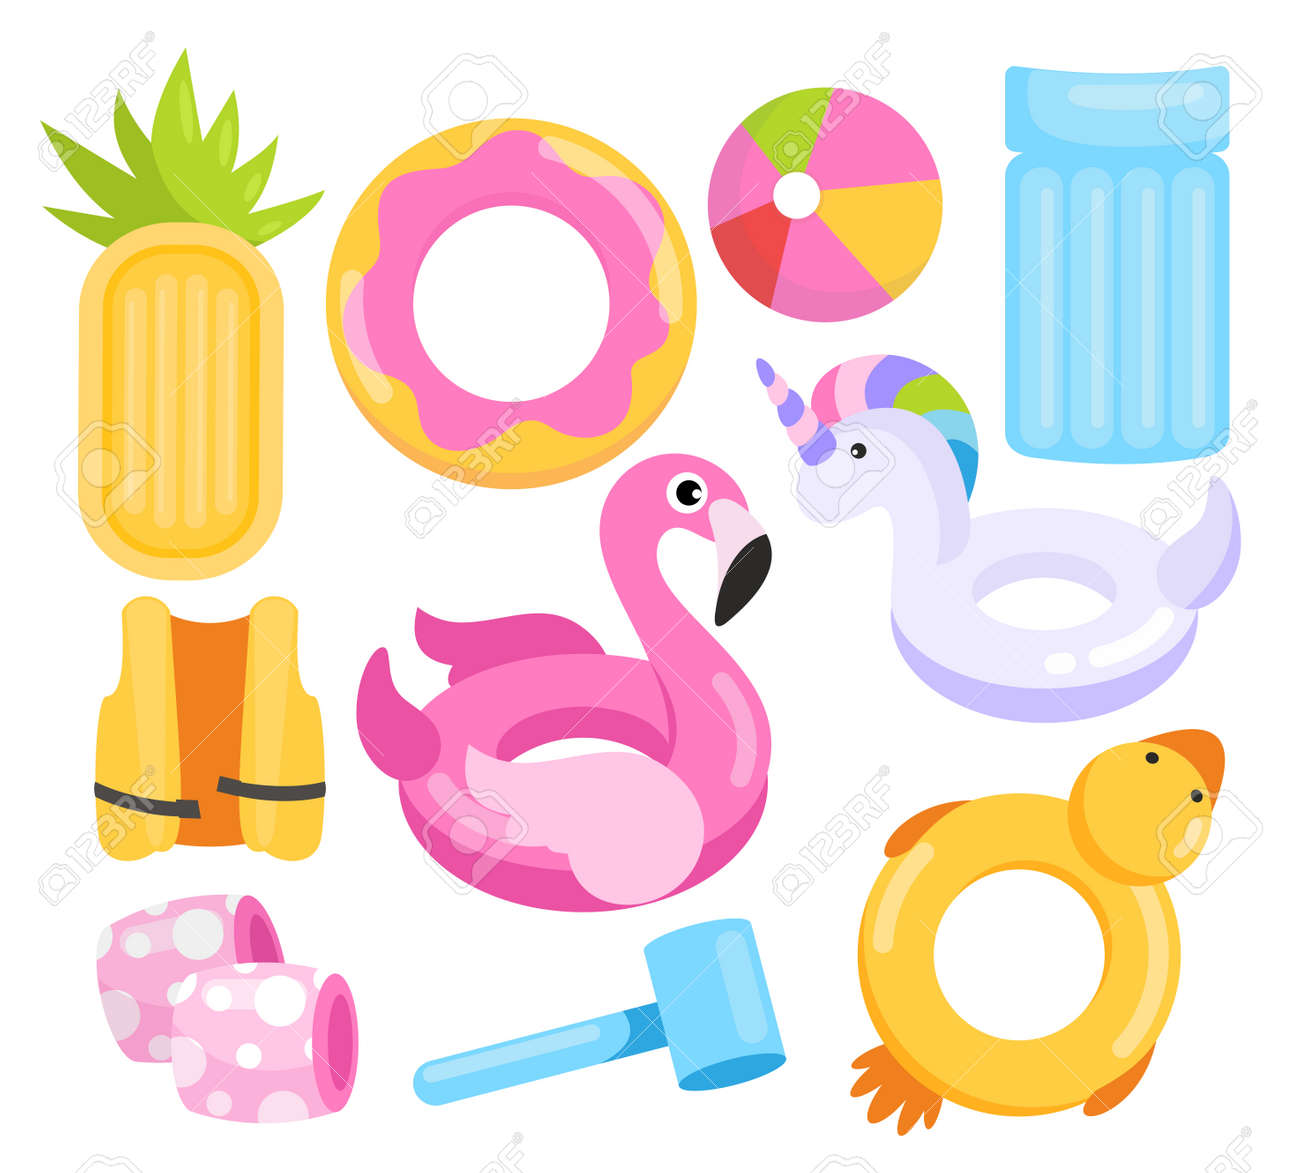 Toys water set, cartoon inflatable equipment collection - 158578836